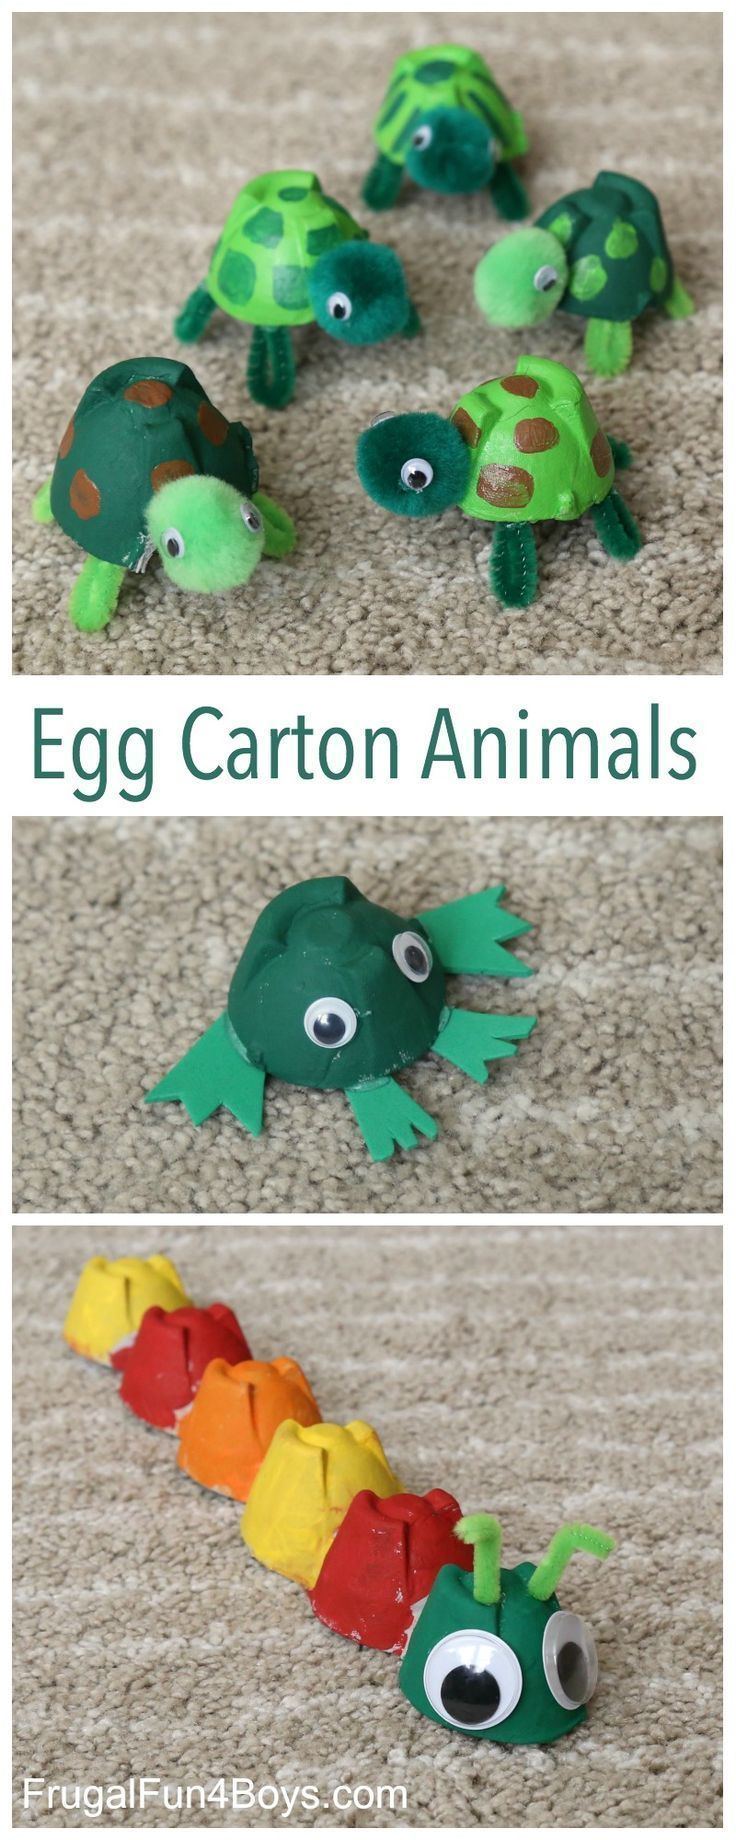 Adorable Egg Carton Turtle Craft (And a Caterpillar and Frog too